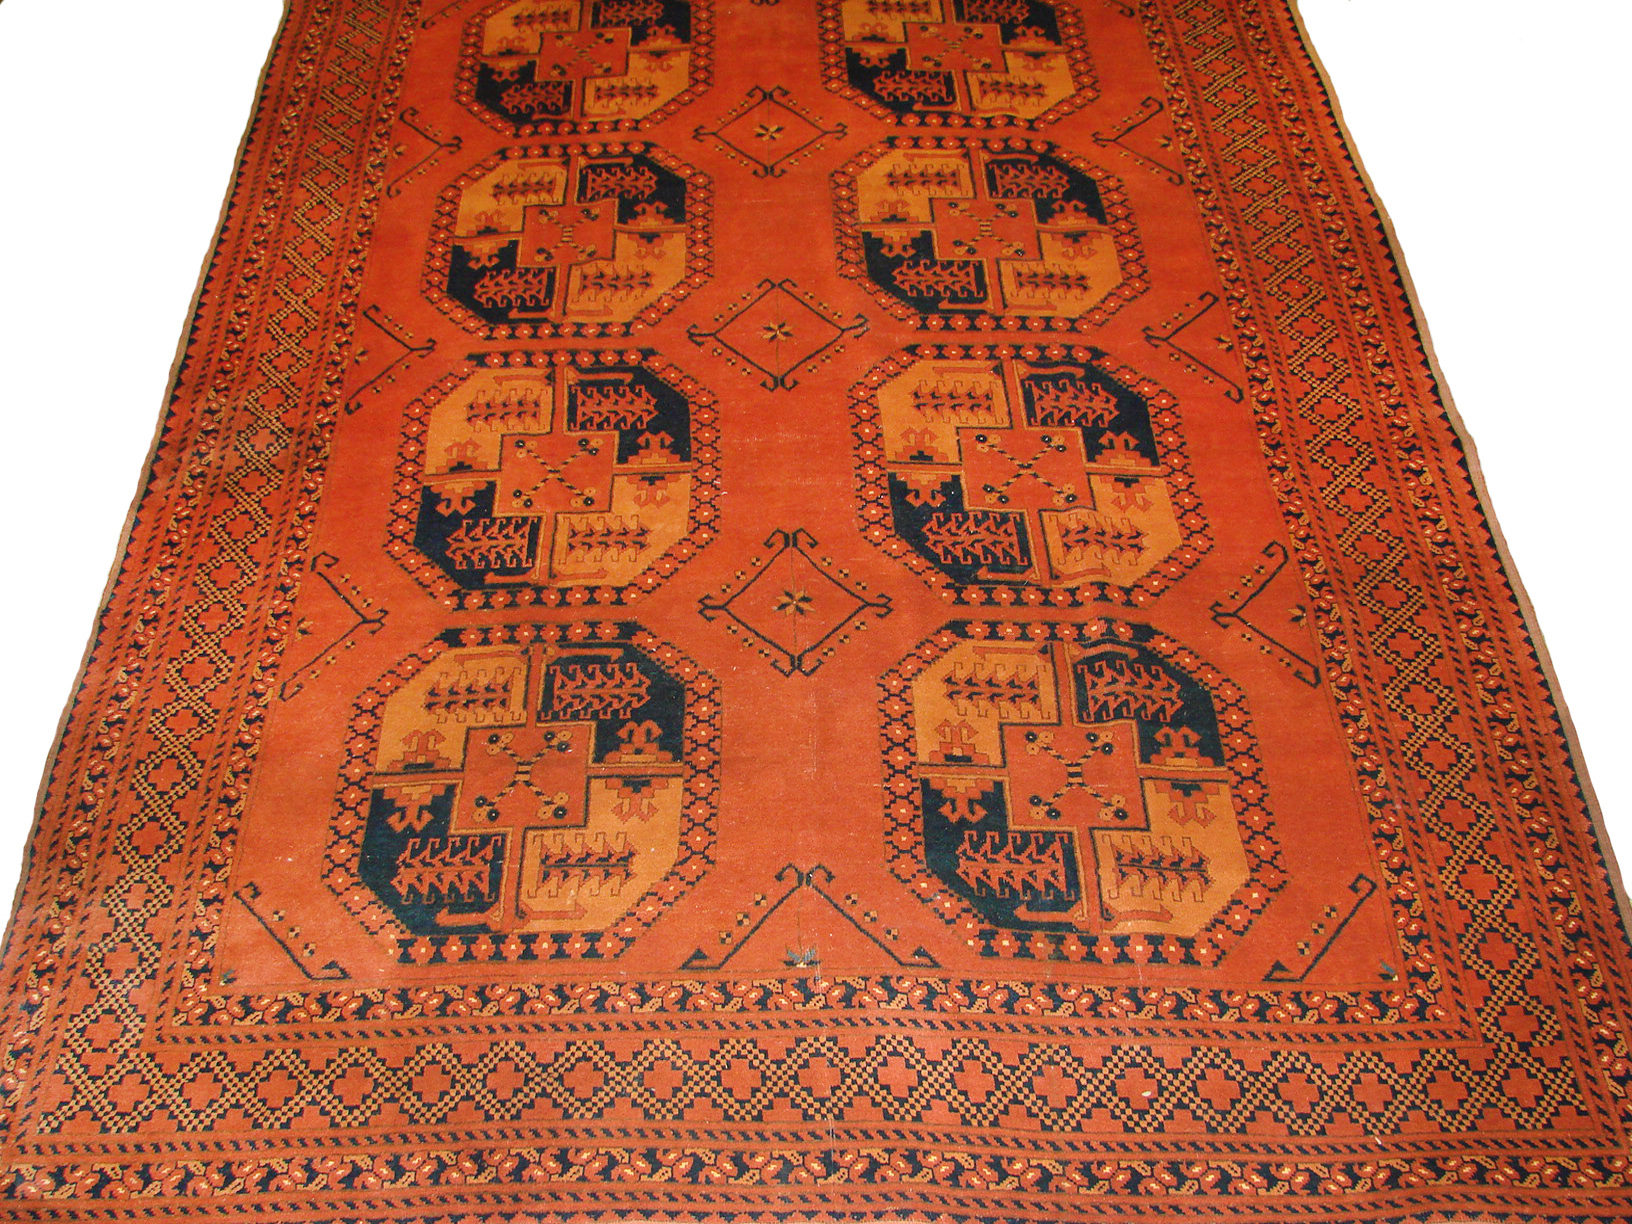 8x10 Bokhara Hand Knotted Wool Area Rug - MR19459